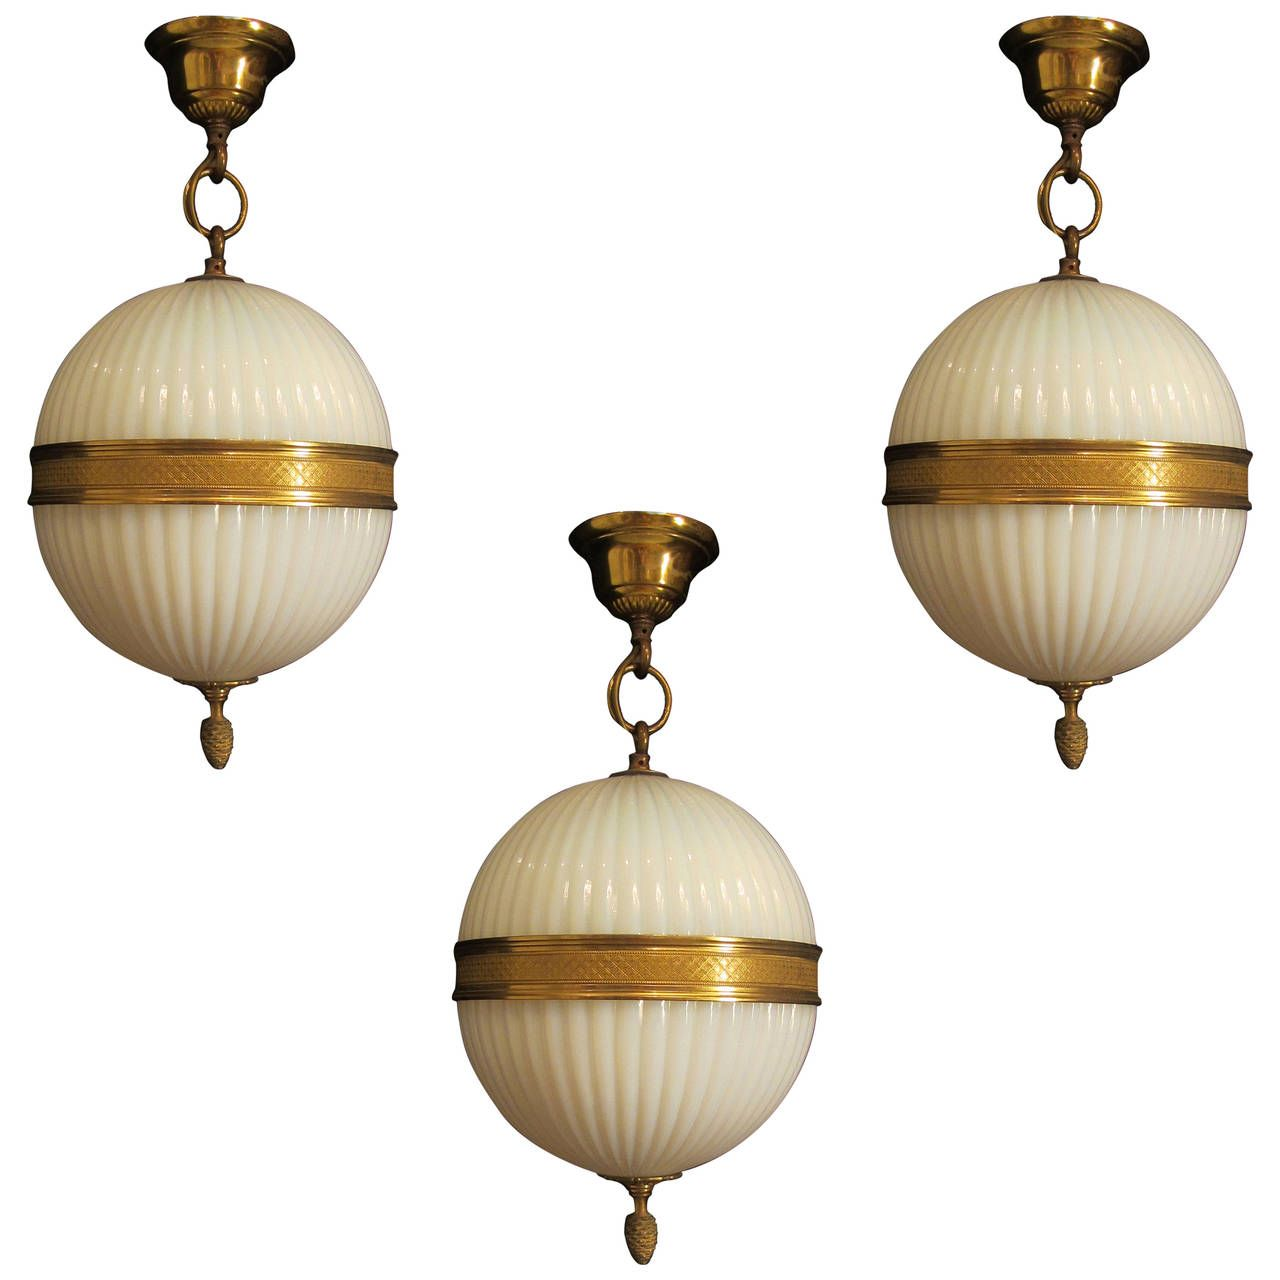 Cut glass globe light and matching wall lights globe lights cut cut glass globe light and matching wall lights from a unique collection of antique and arubaitofo Choice Image